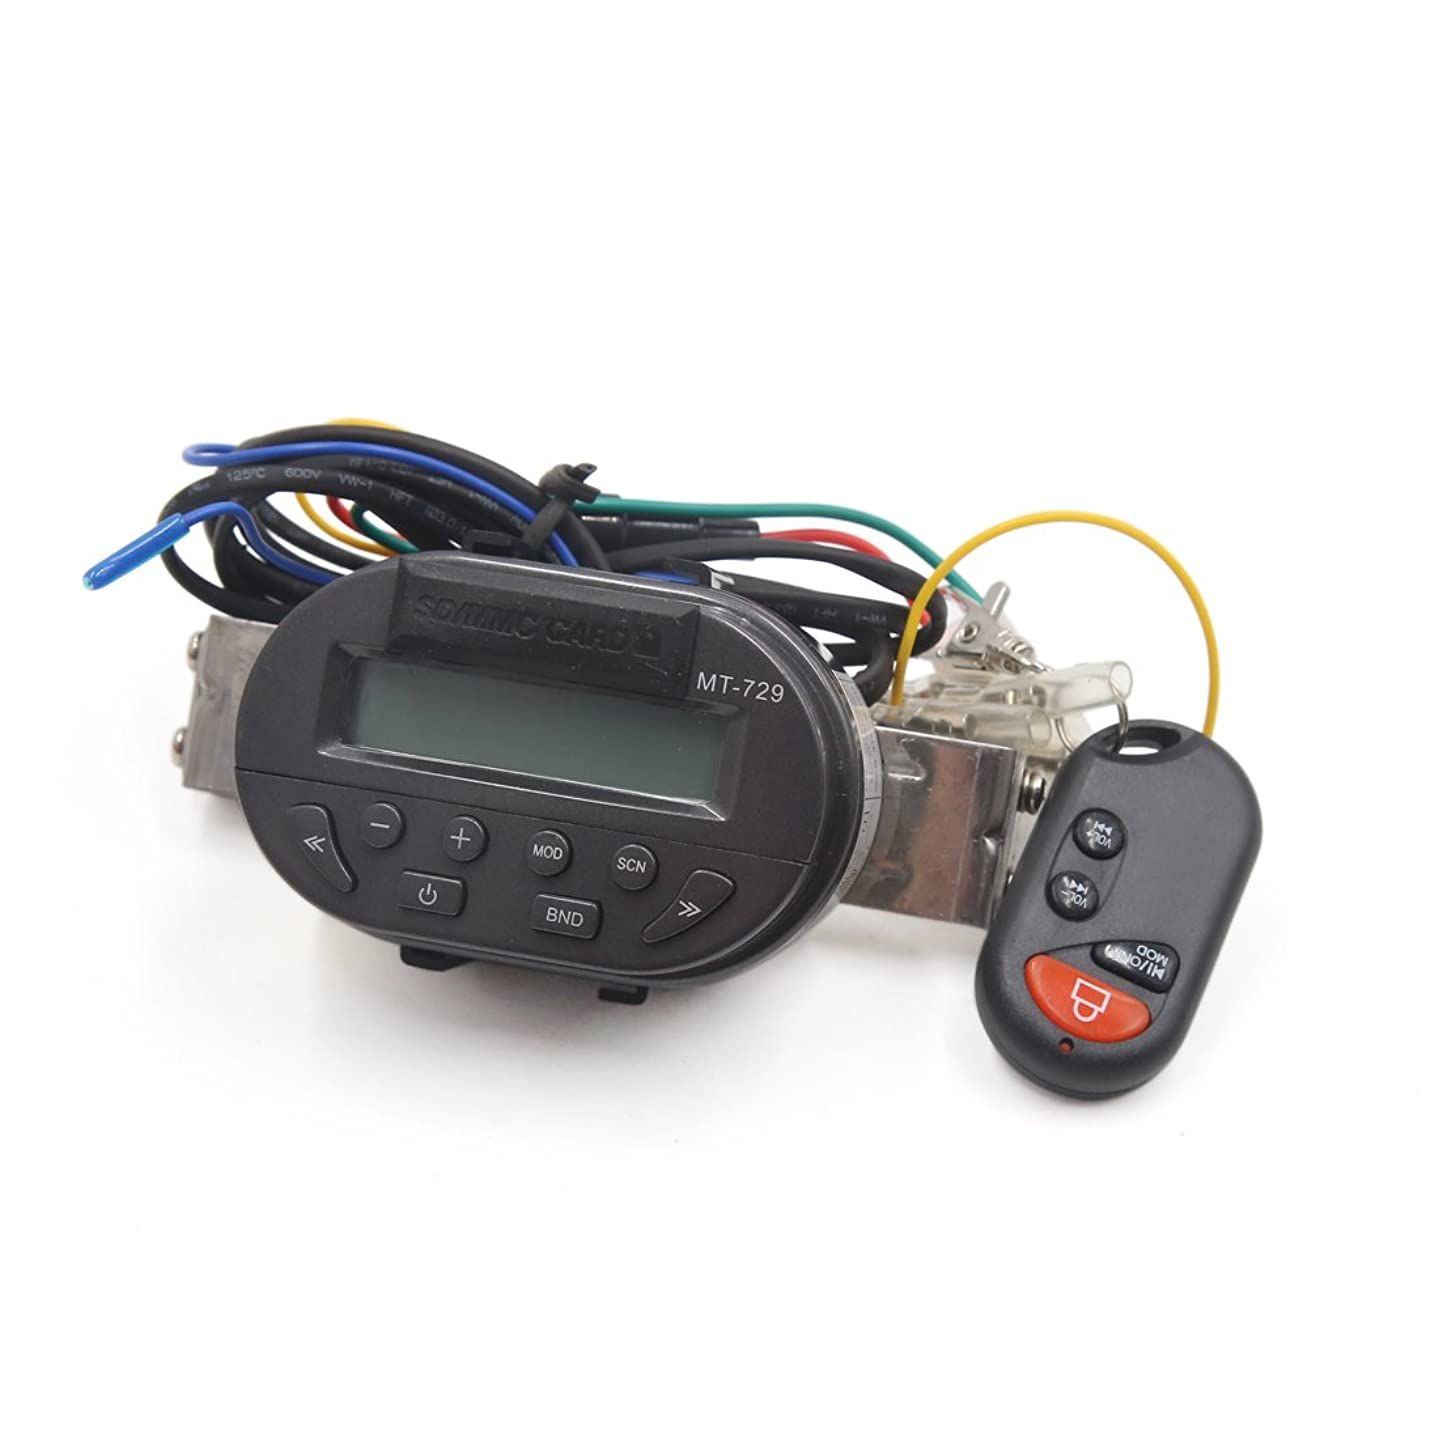 uxcell a17060500ux0673 Motorcycle MP3 Amplifier Speaker